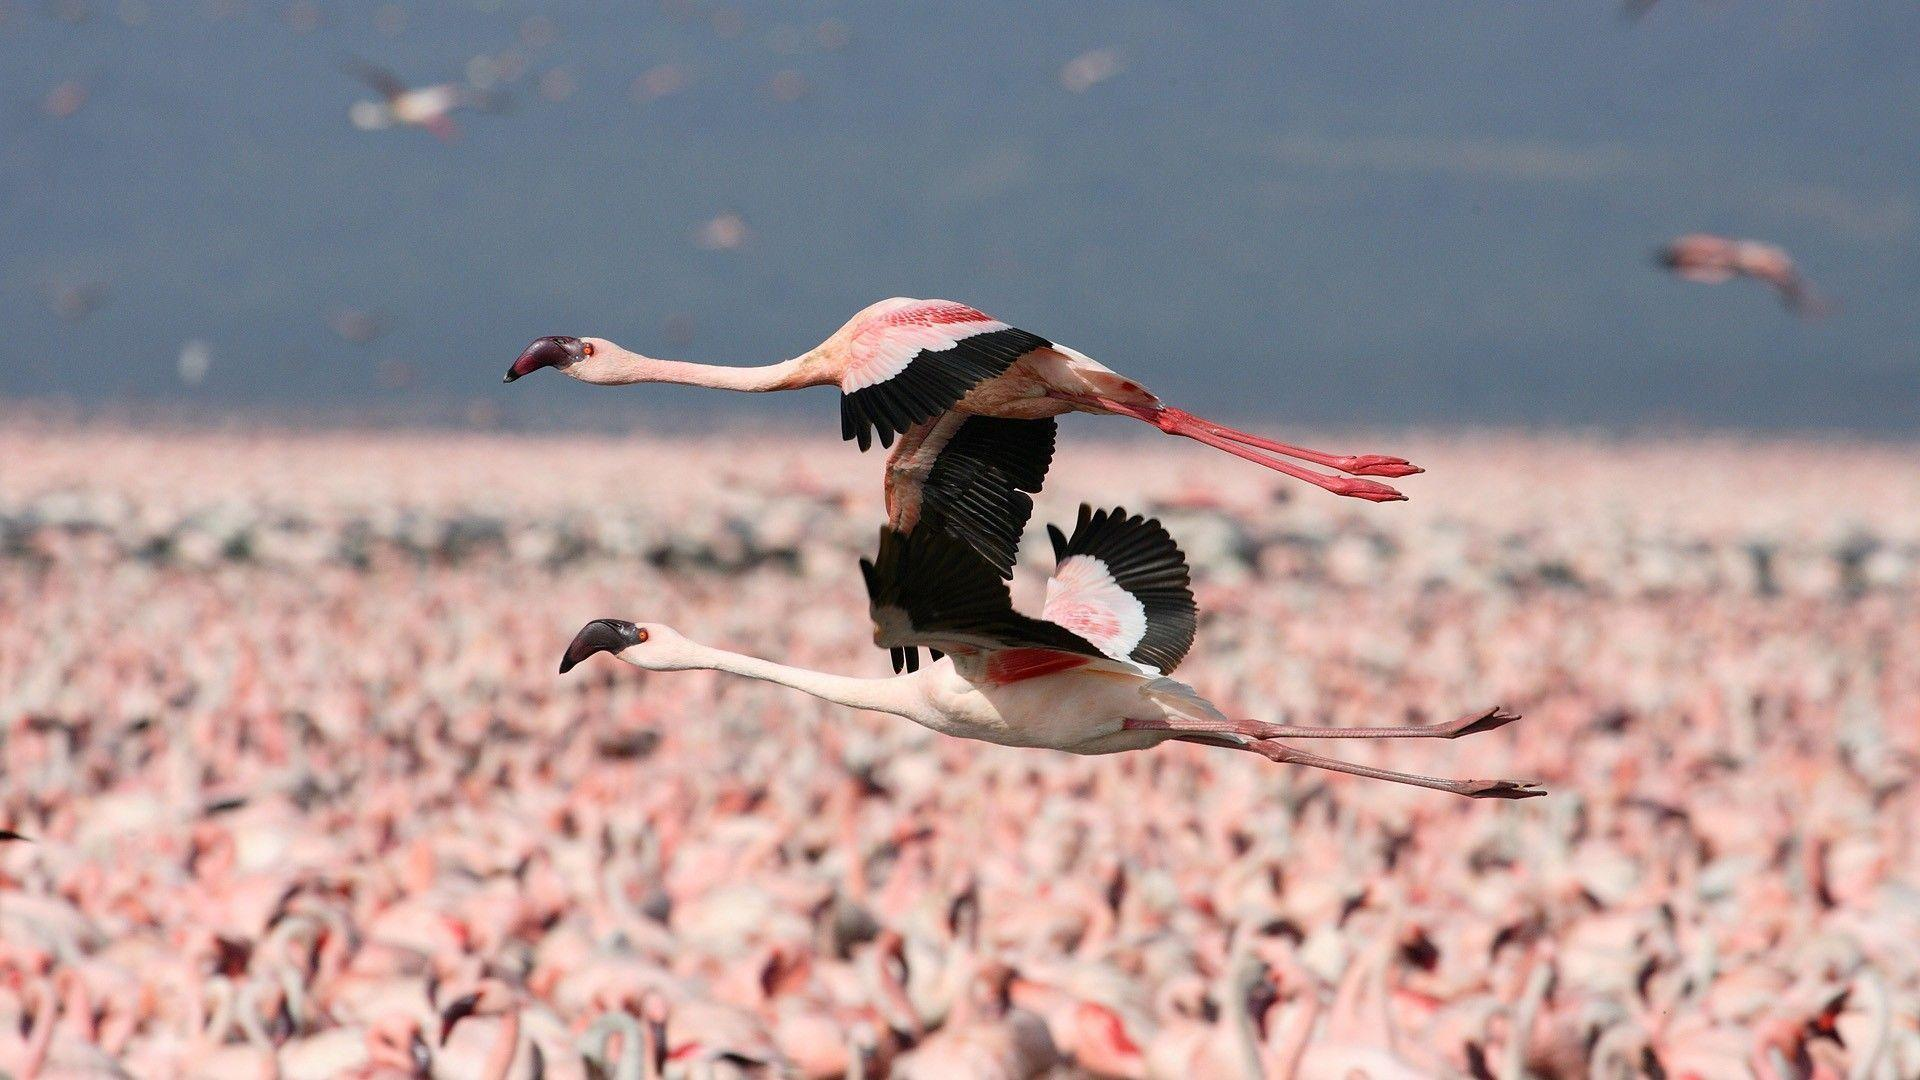 Download Animal Flamingo Wallpapers 1920x1080